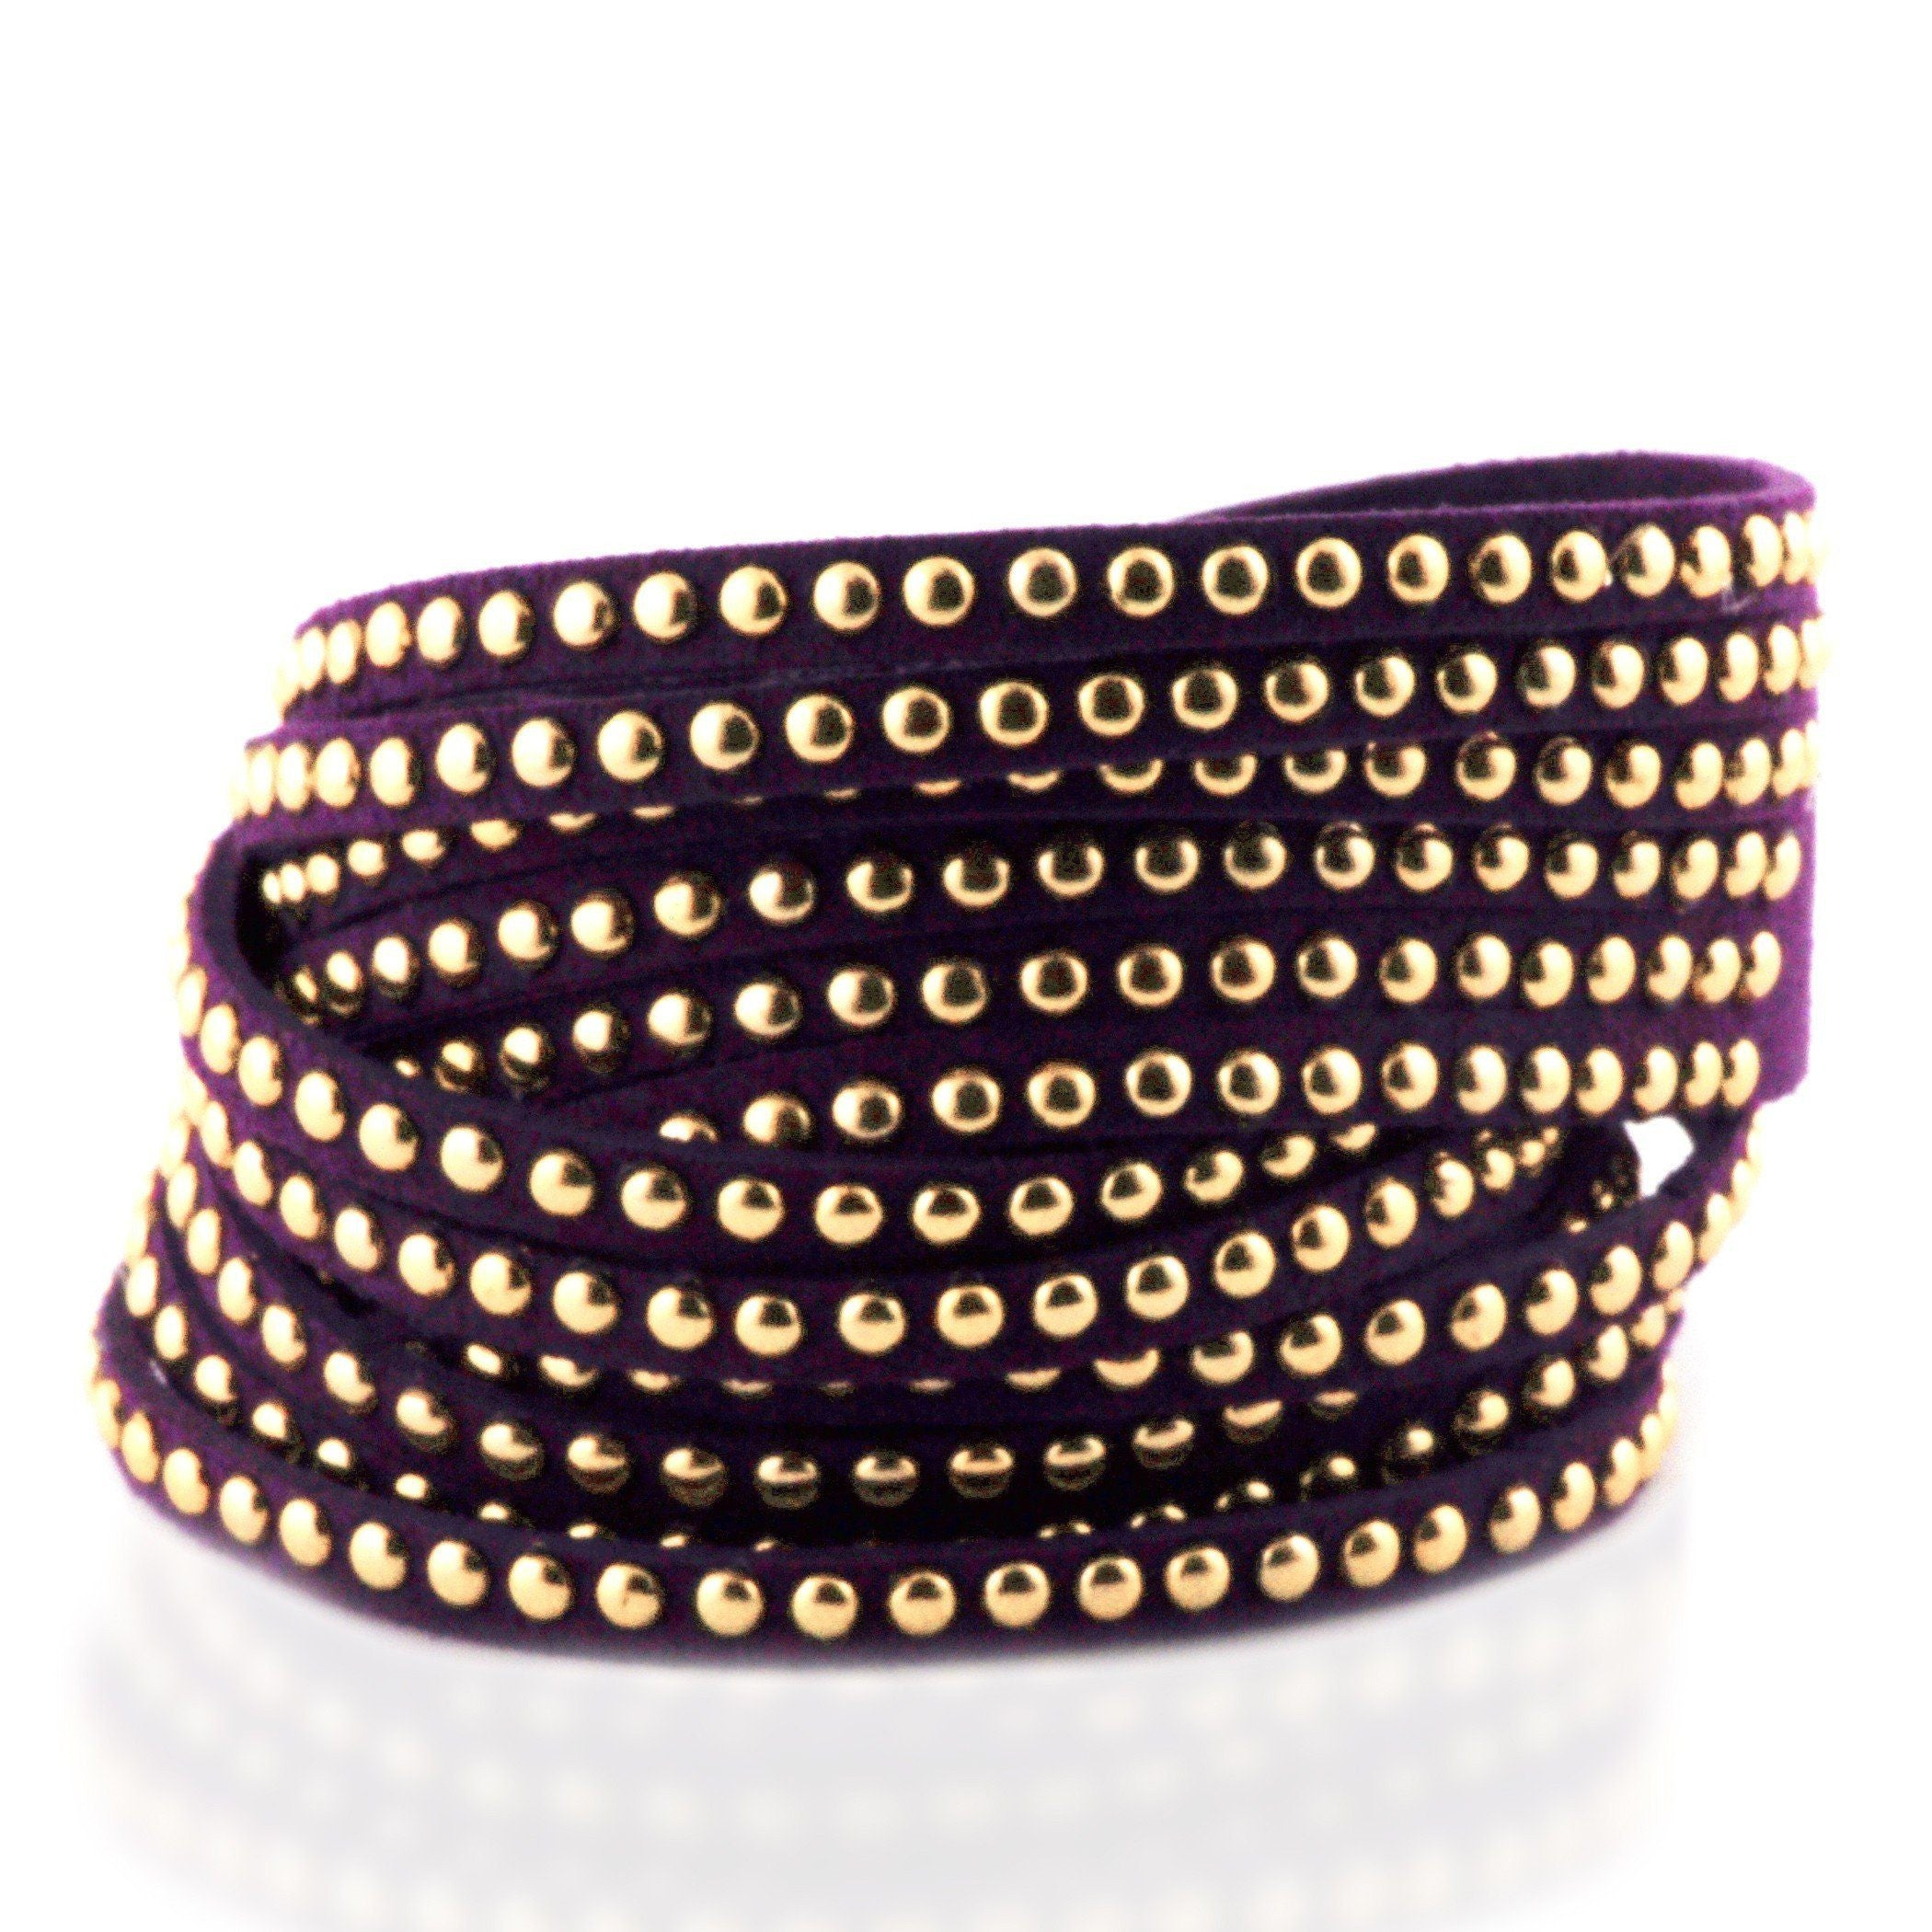 Purple Soft Leather Wrap Bracelet with Stainless Steel Beading - 7""